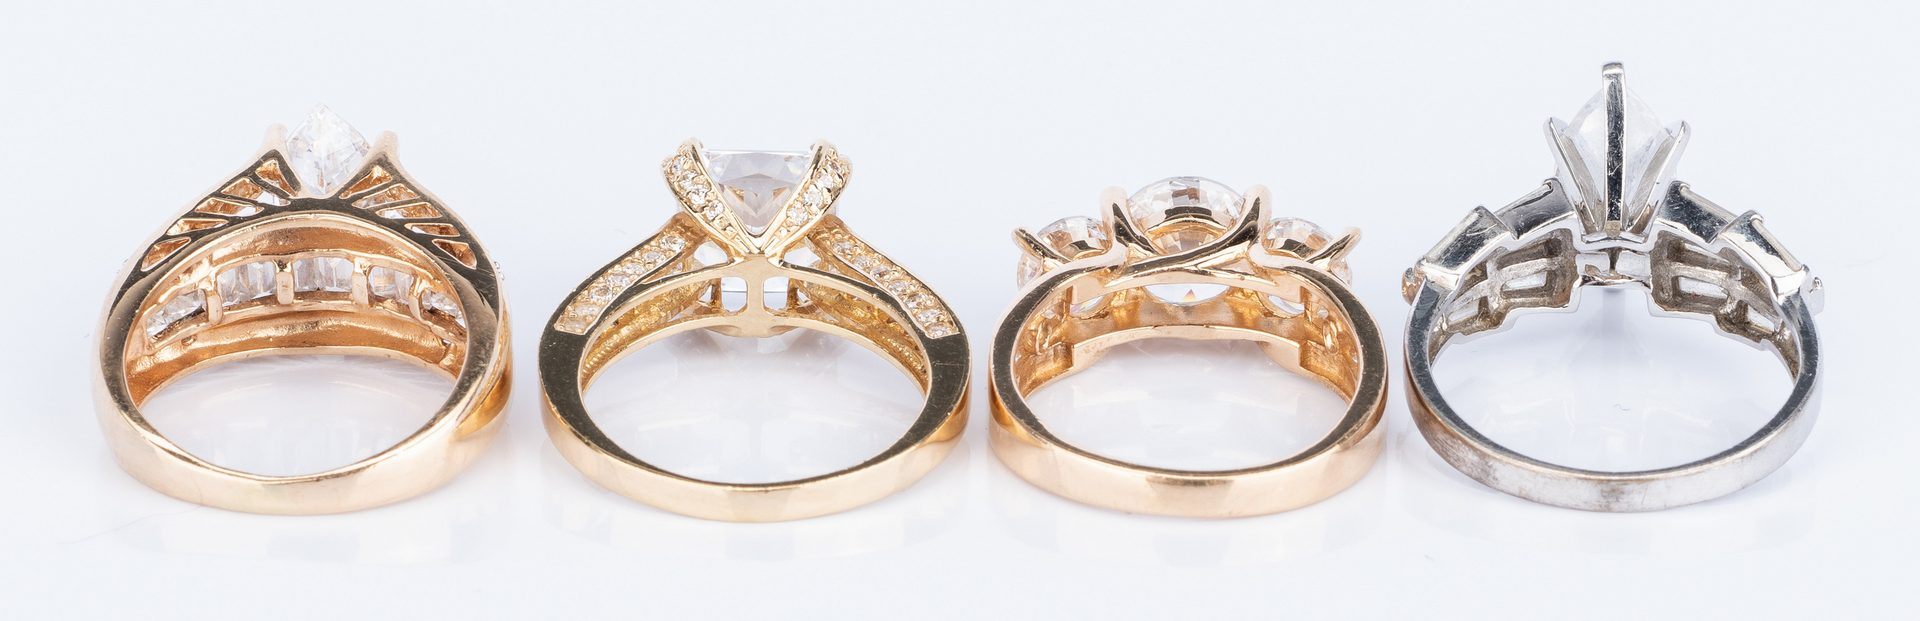 Lot 52: 4 14K Faux Diamond Travel Rings